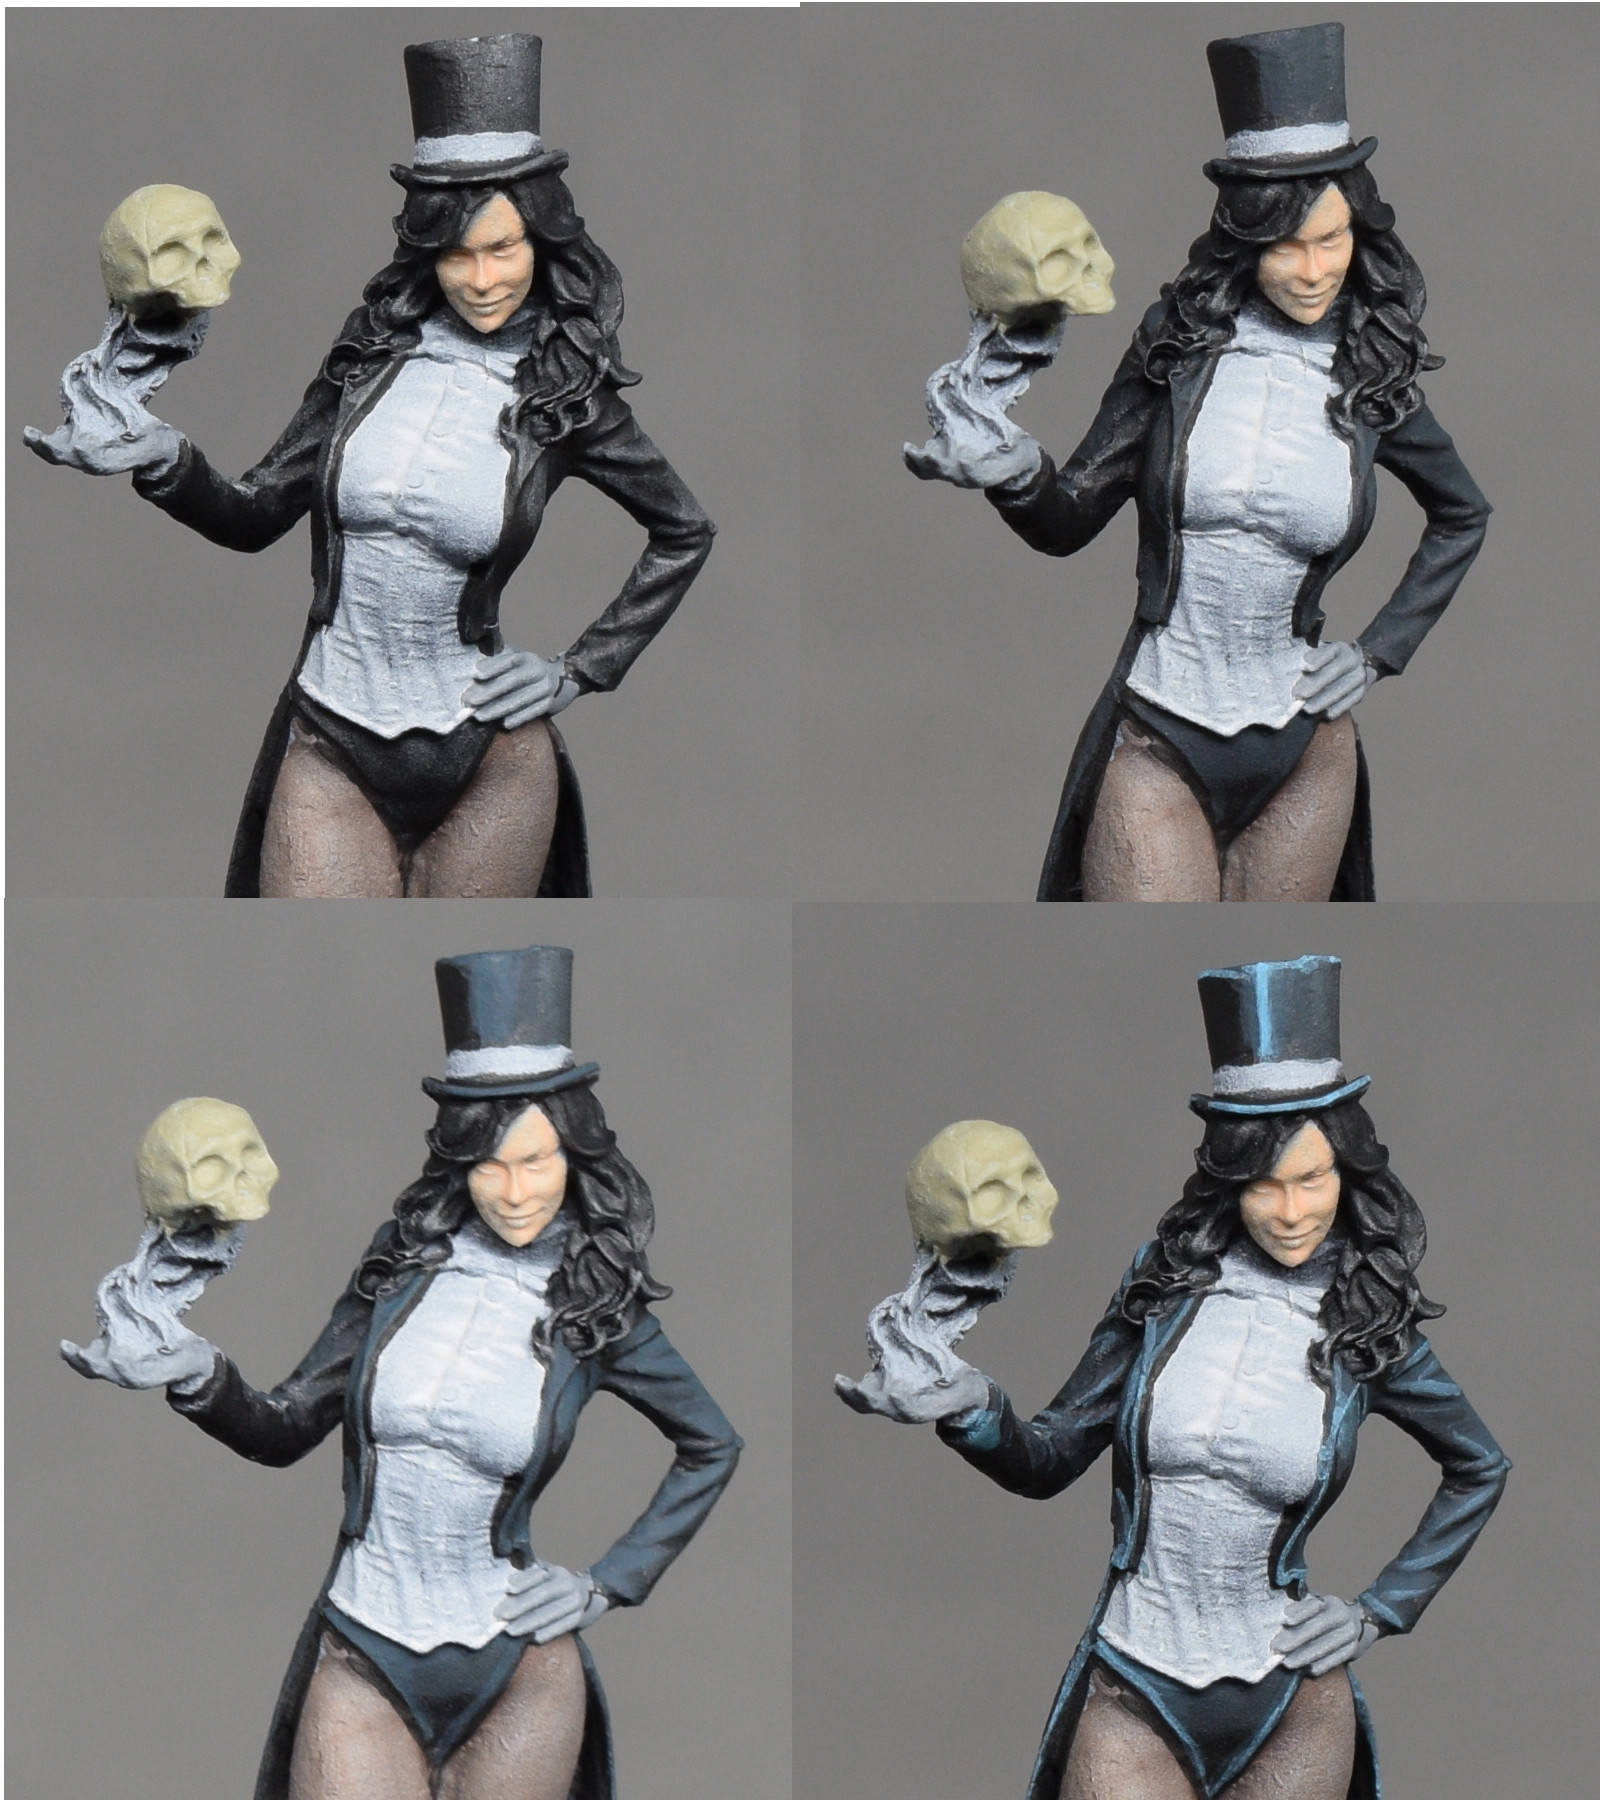 Zatanna painting tutorial